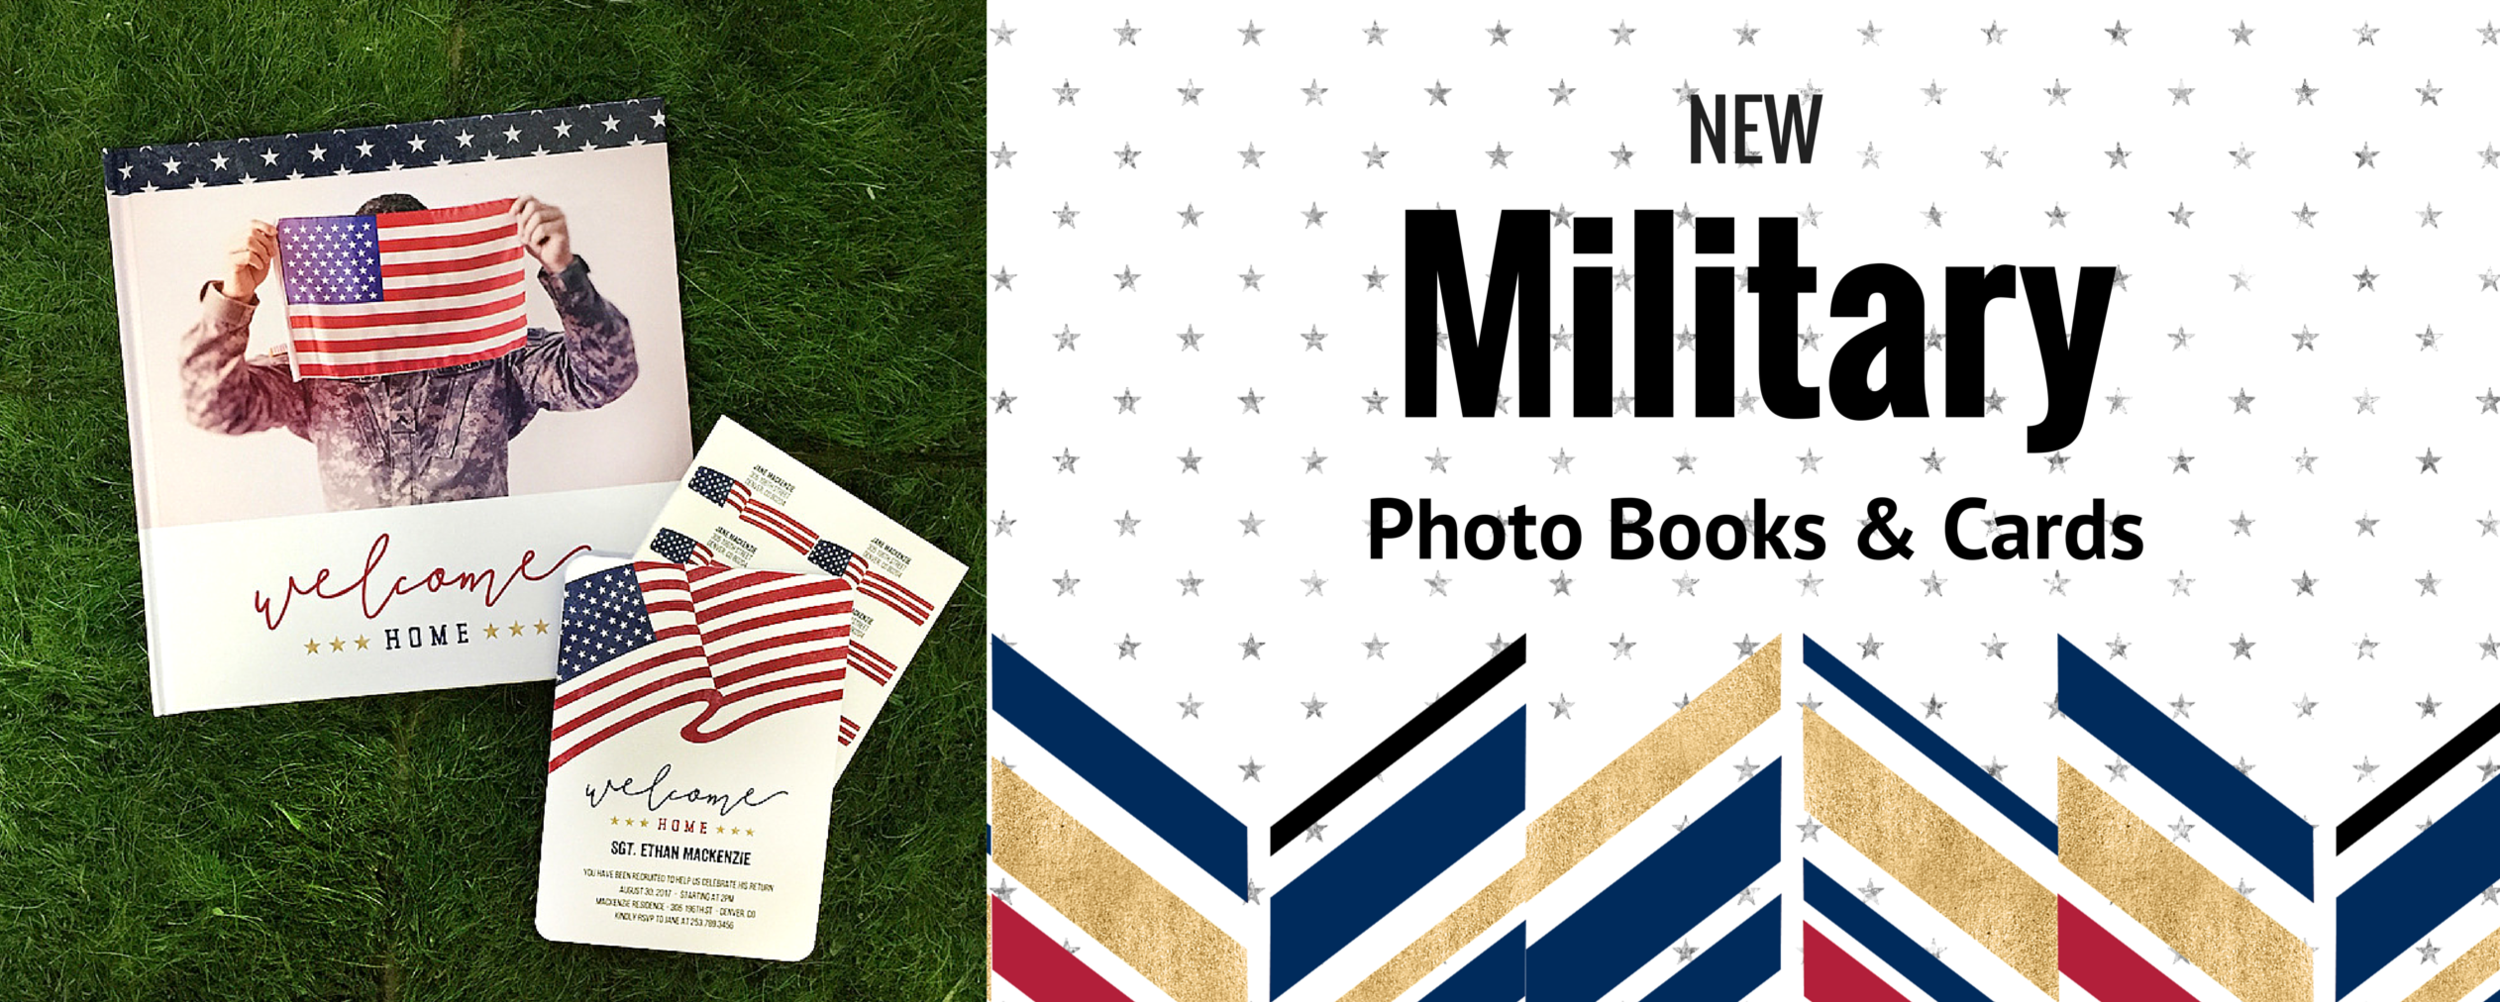 New Military Photo Book & Cards